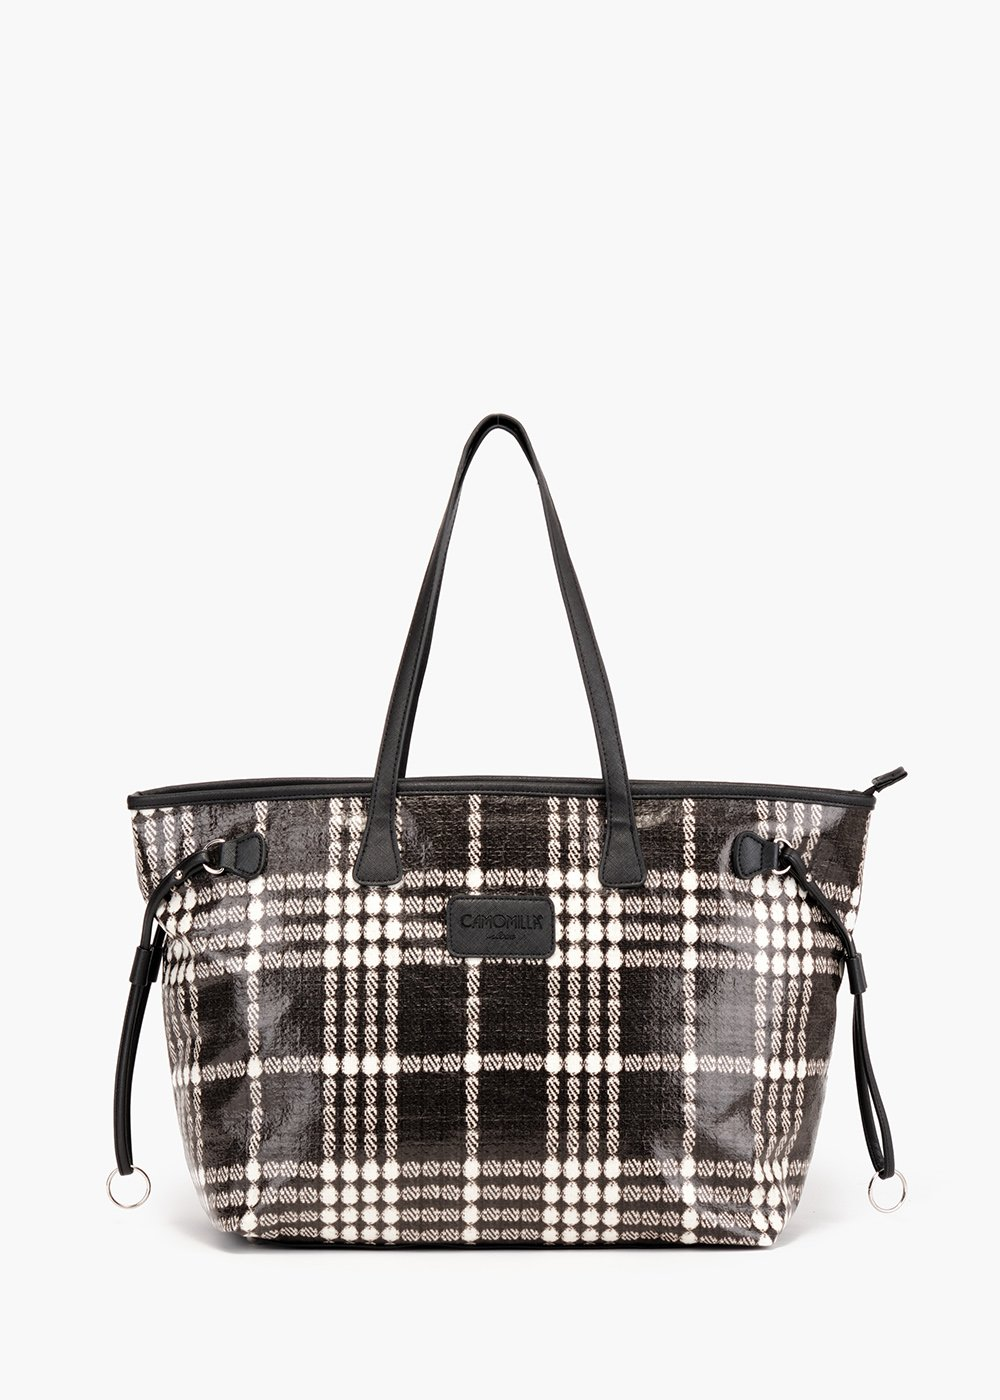 Nelly Tartan shopping bag in bonded fabric